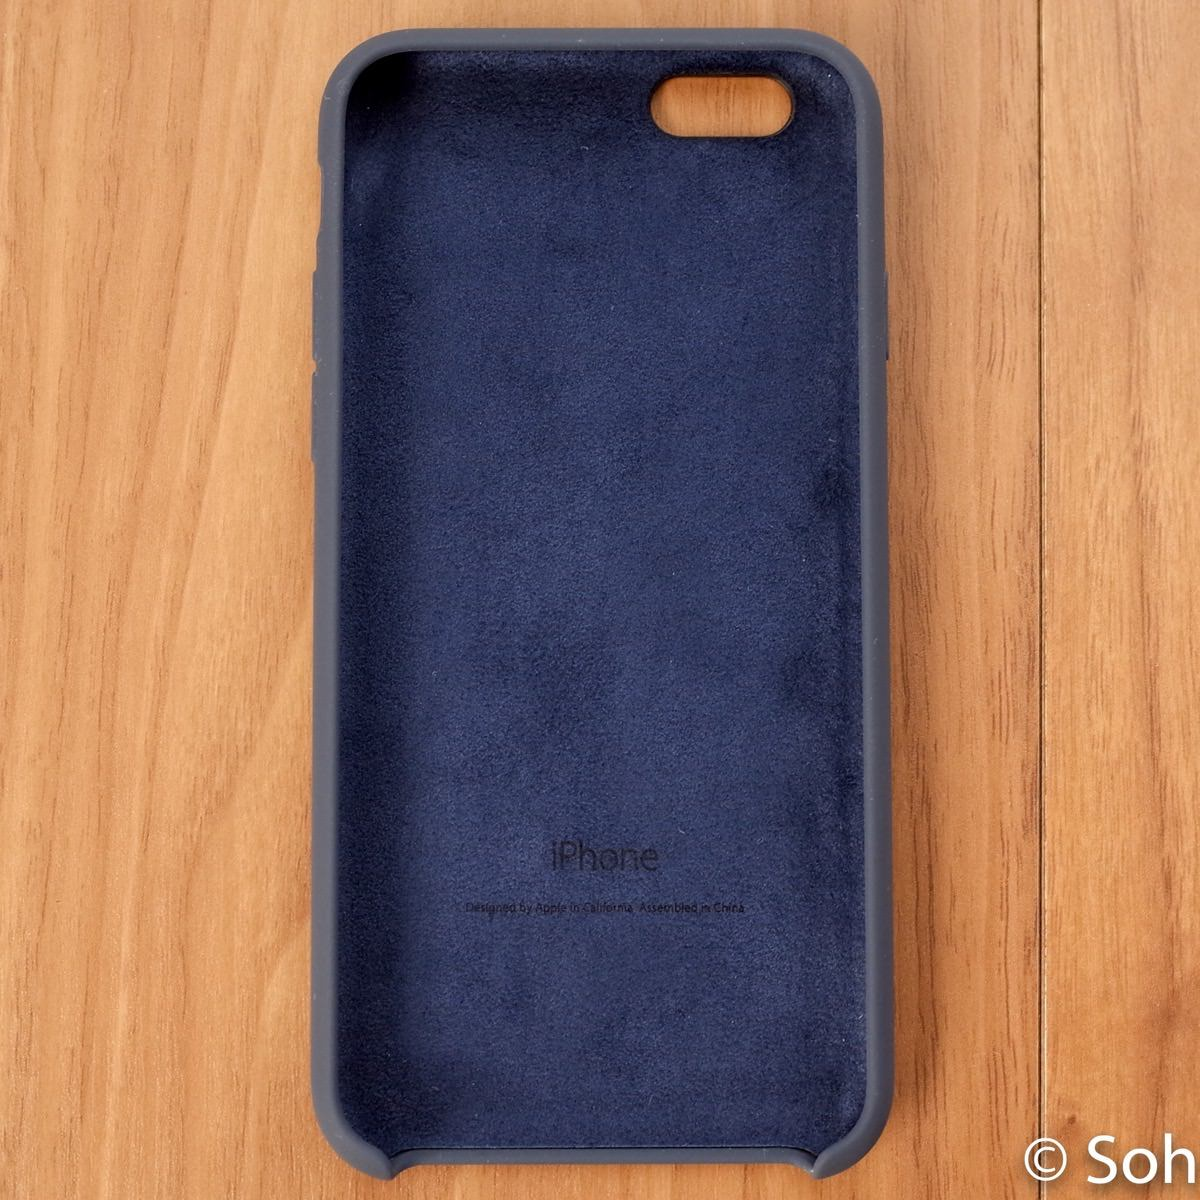 20150923iphone6ssiliconcase5